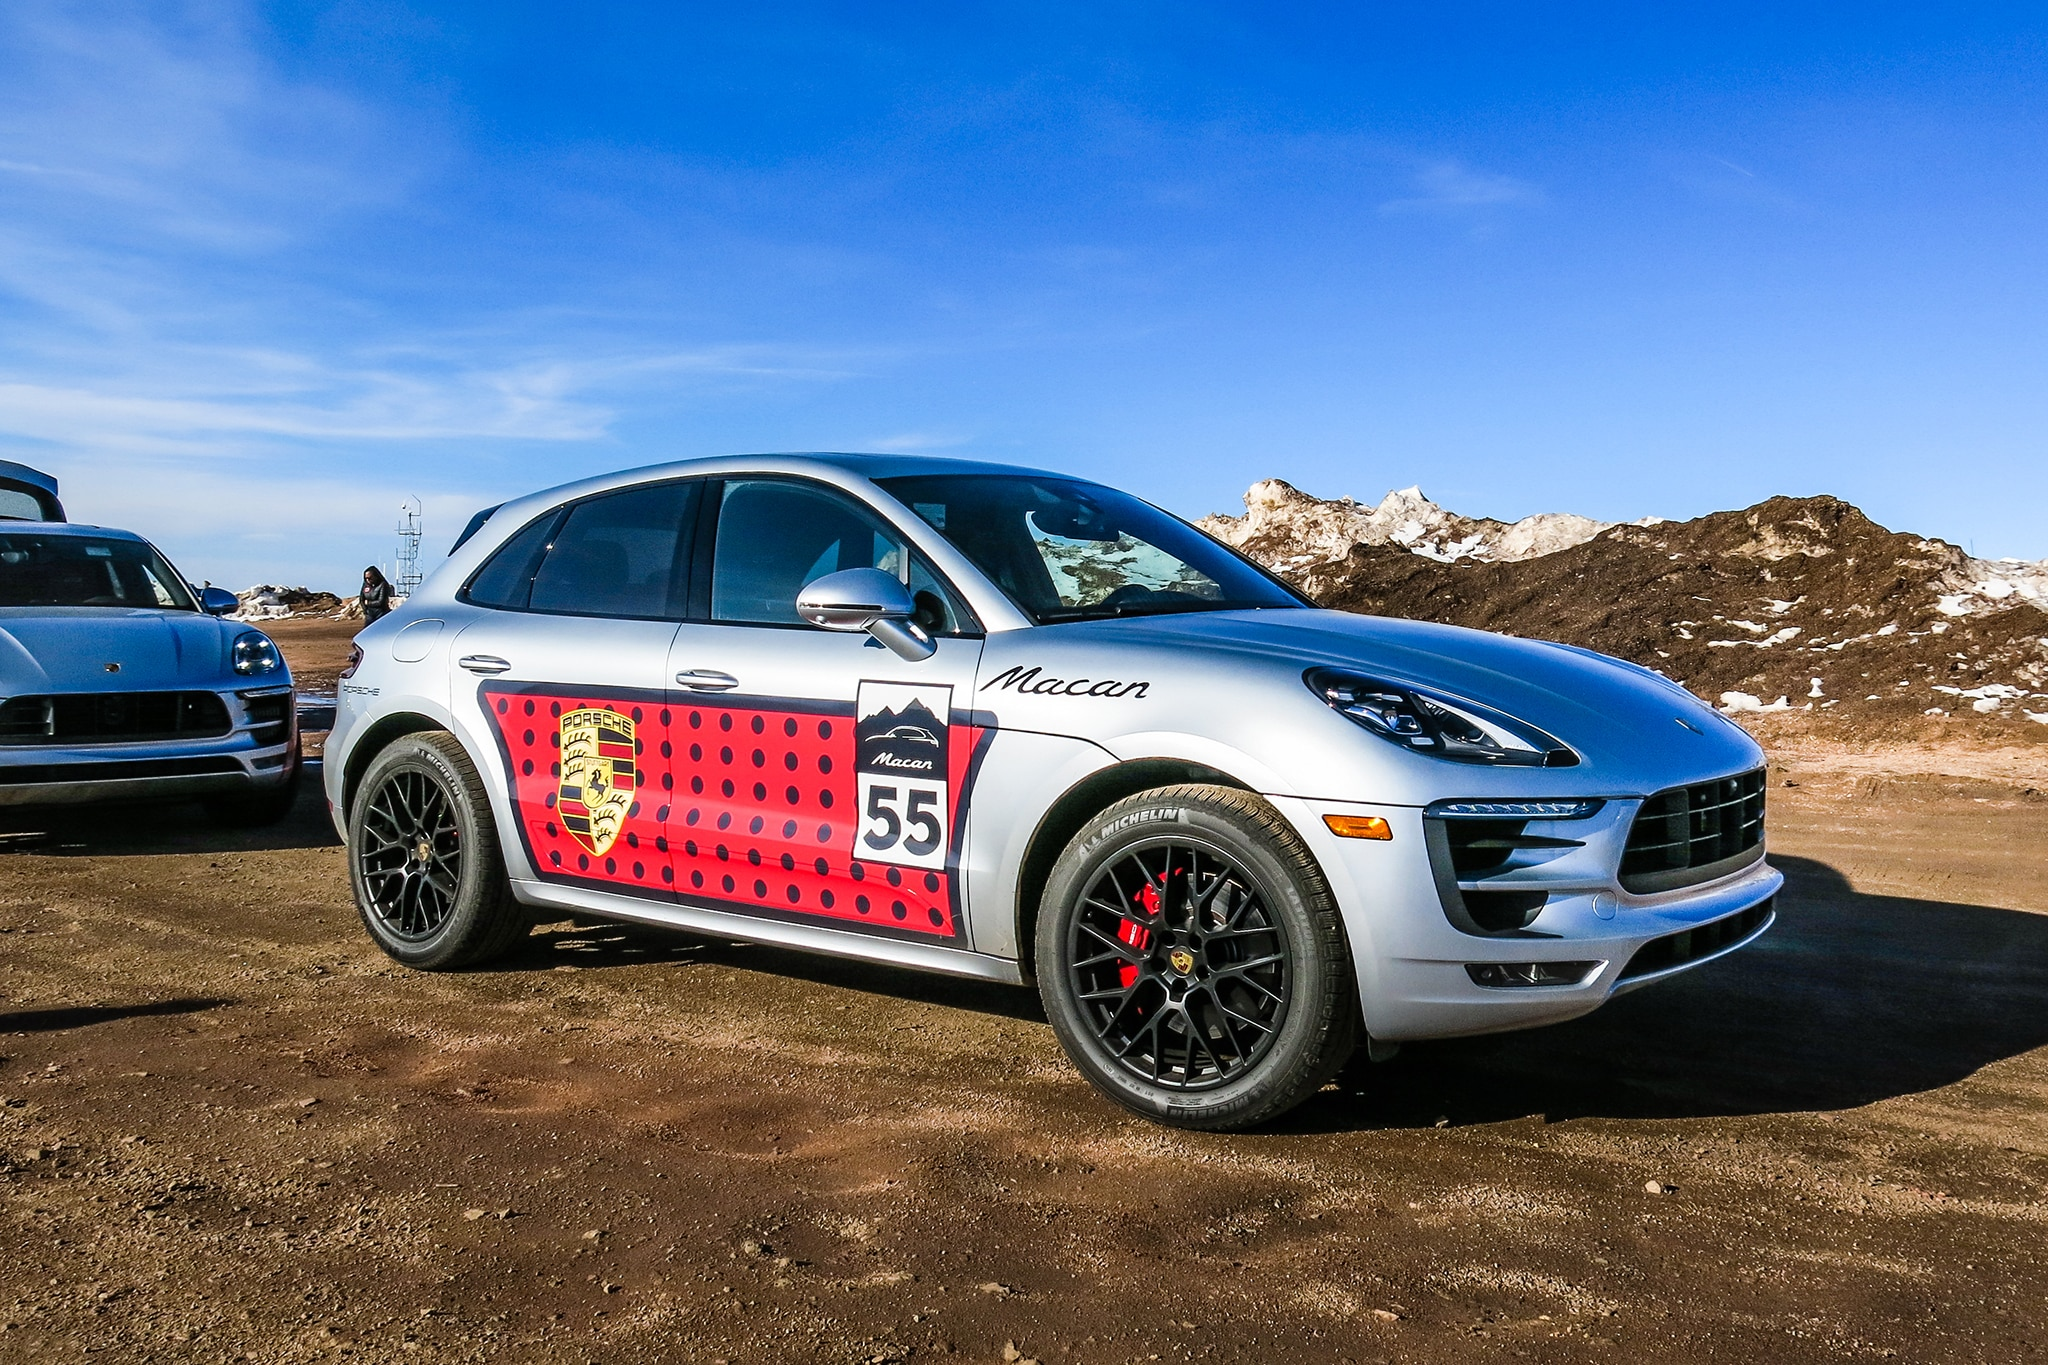 2017 Porsche Macan GTS front three quarter 03 - Automobile